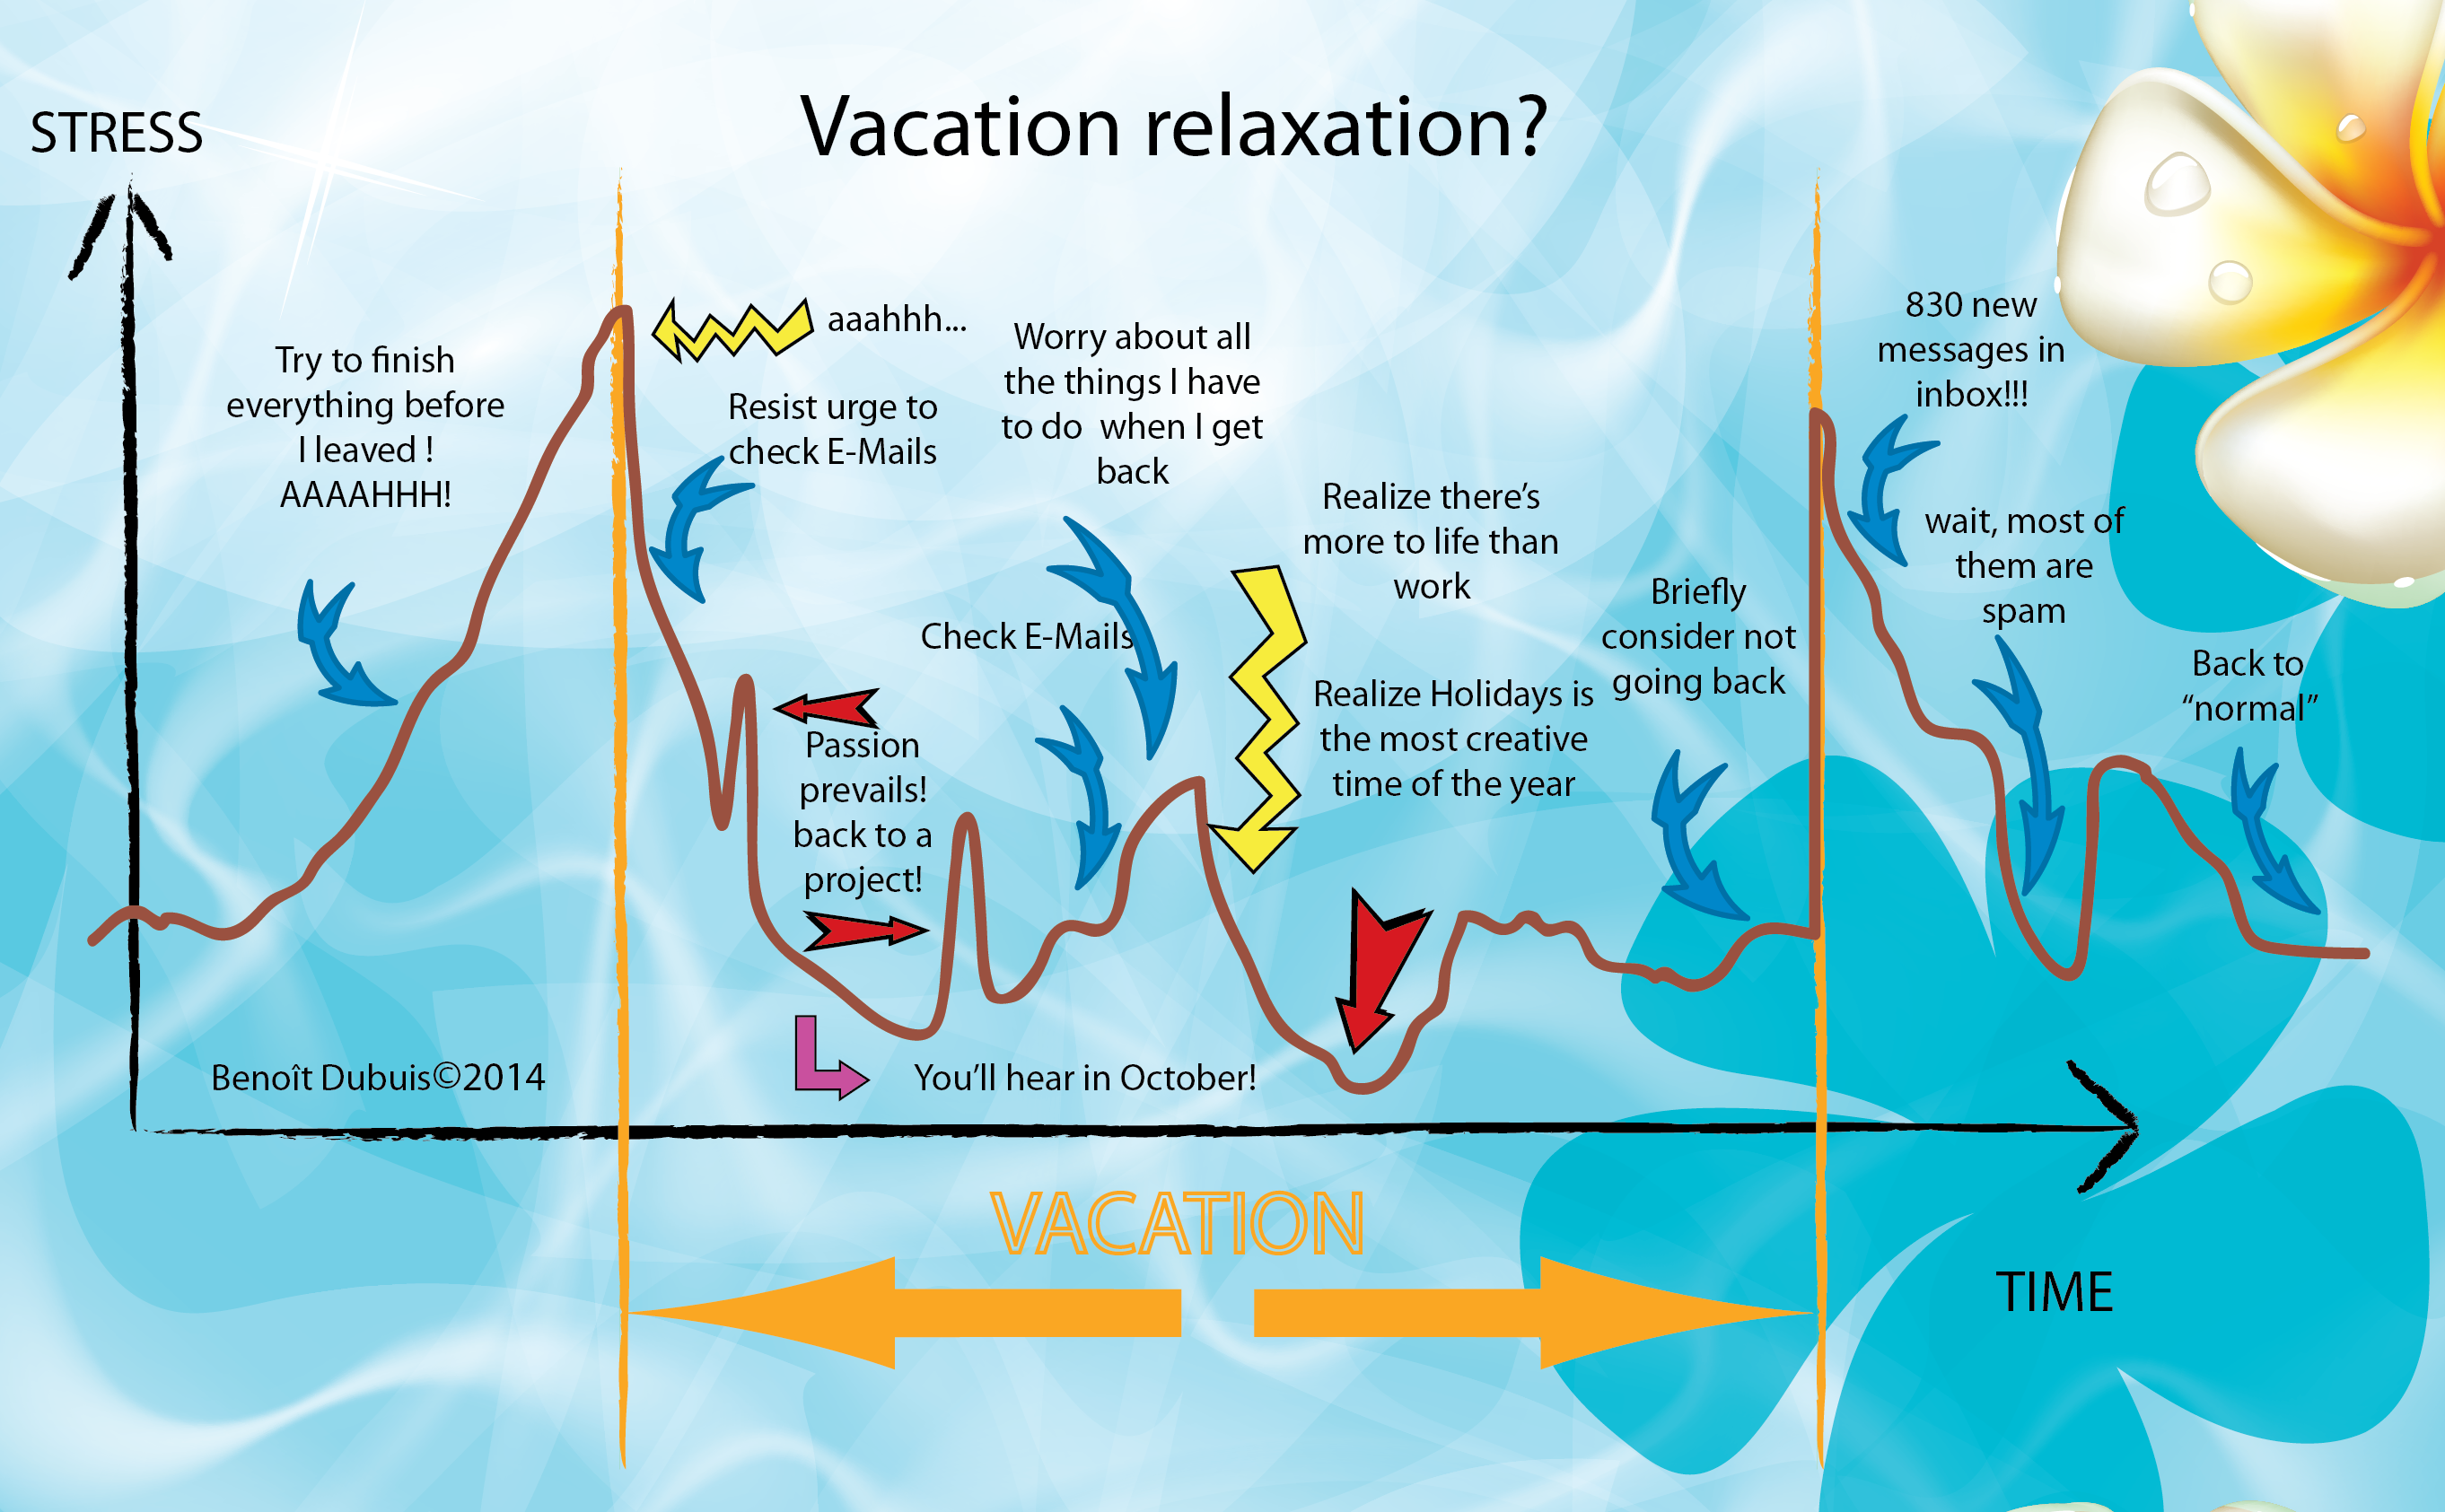 vacation stress relaxation republic of innovation